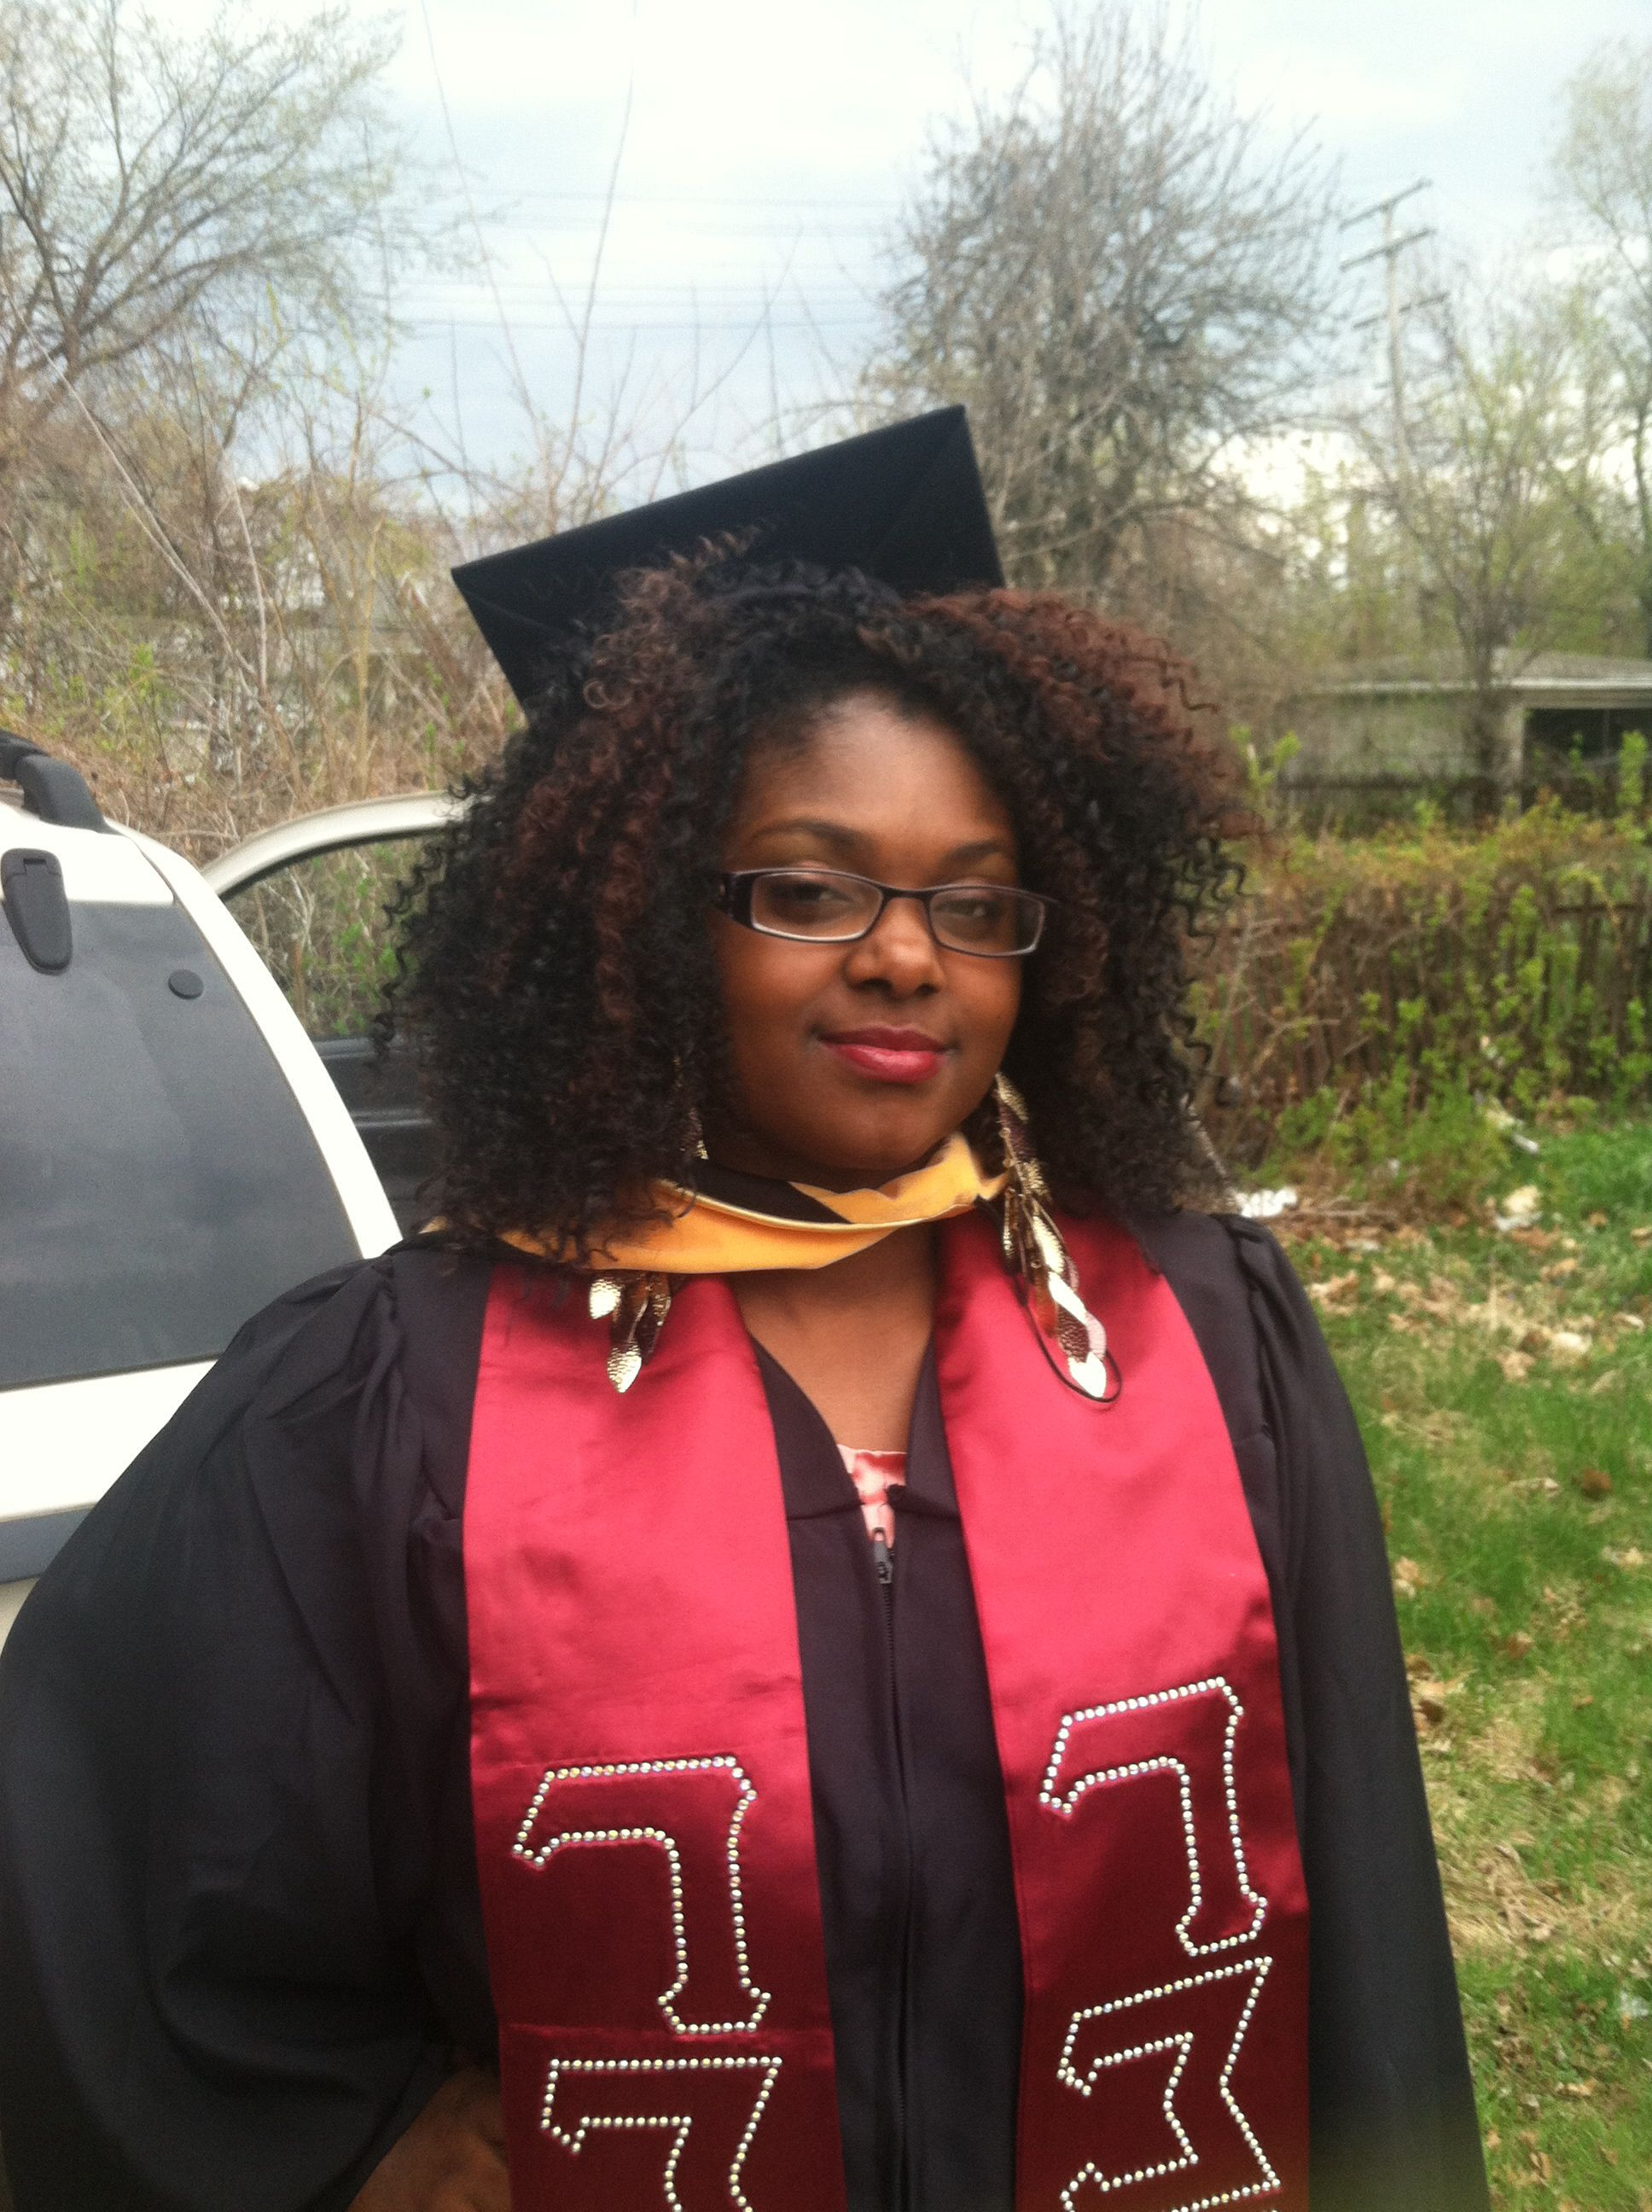 Graduation Cap And Crochet Braids | Natural Hair In 2018 | Pinterest Within Graduation Cap Hairstyles For Short Hair (View 24 of 25)